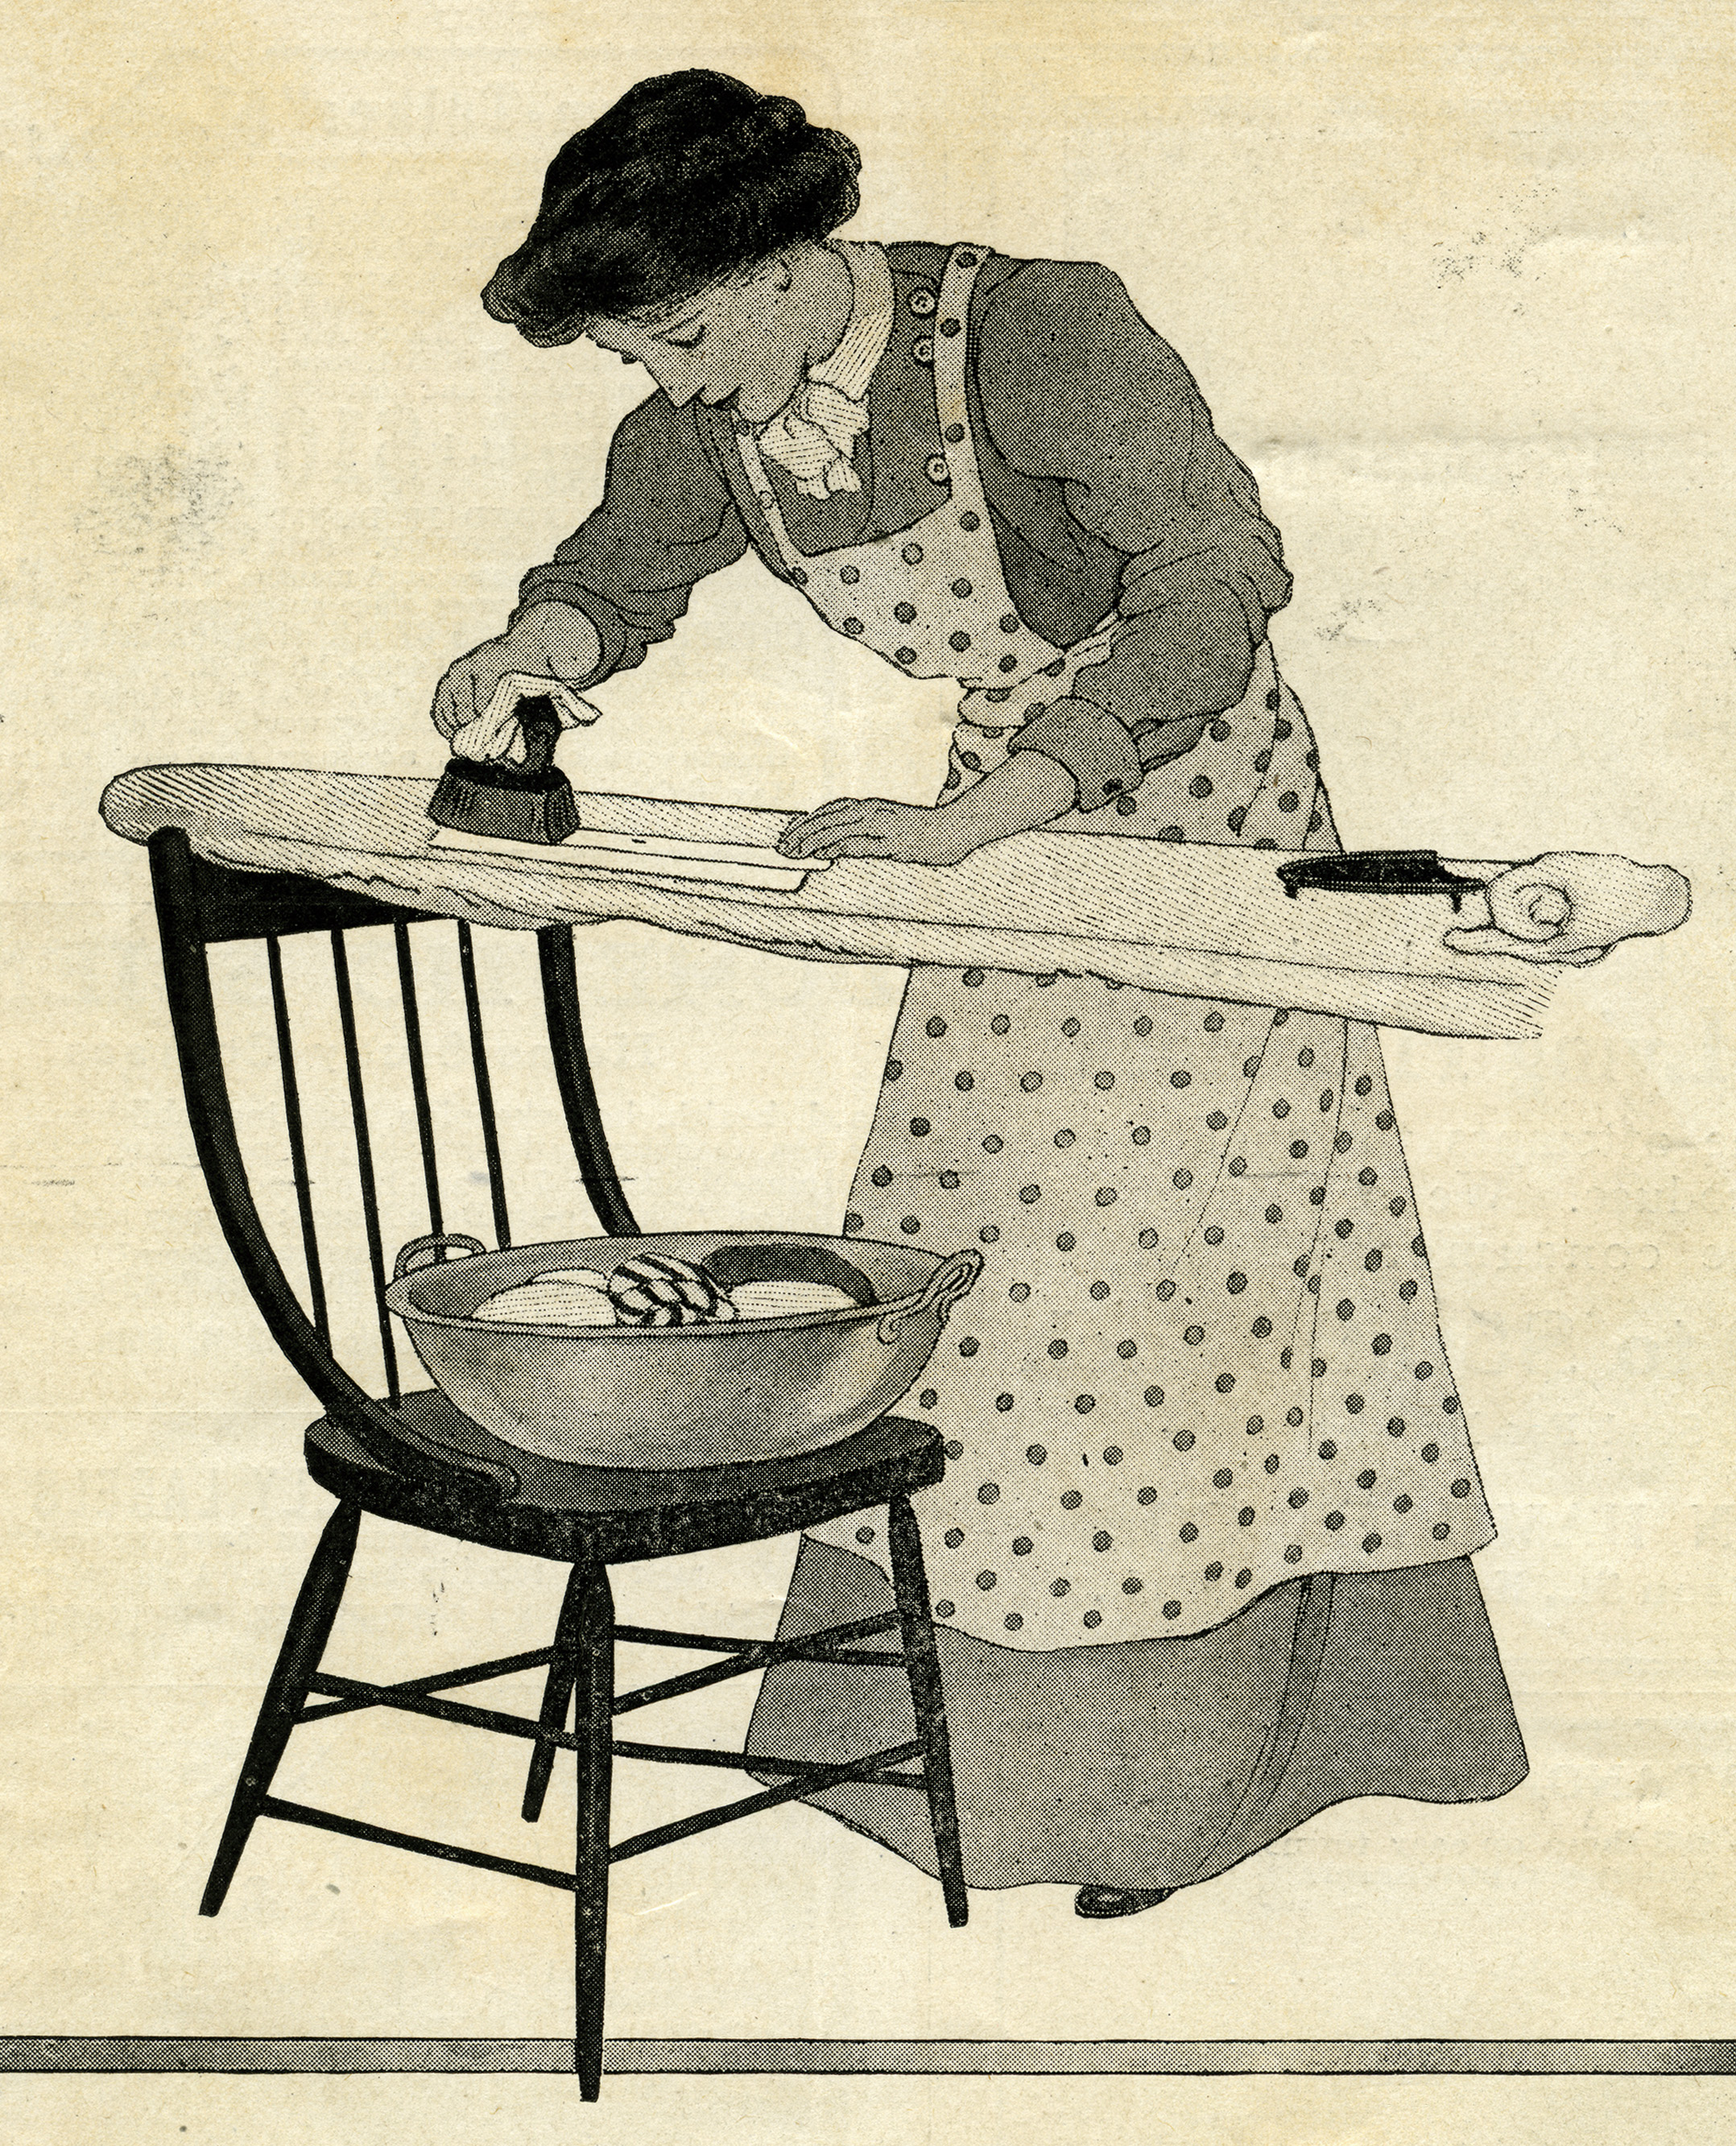 Woman Ironing Clothes ~ Free Vintage Graphics | Old Design ...